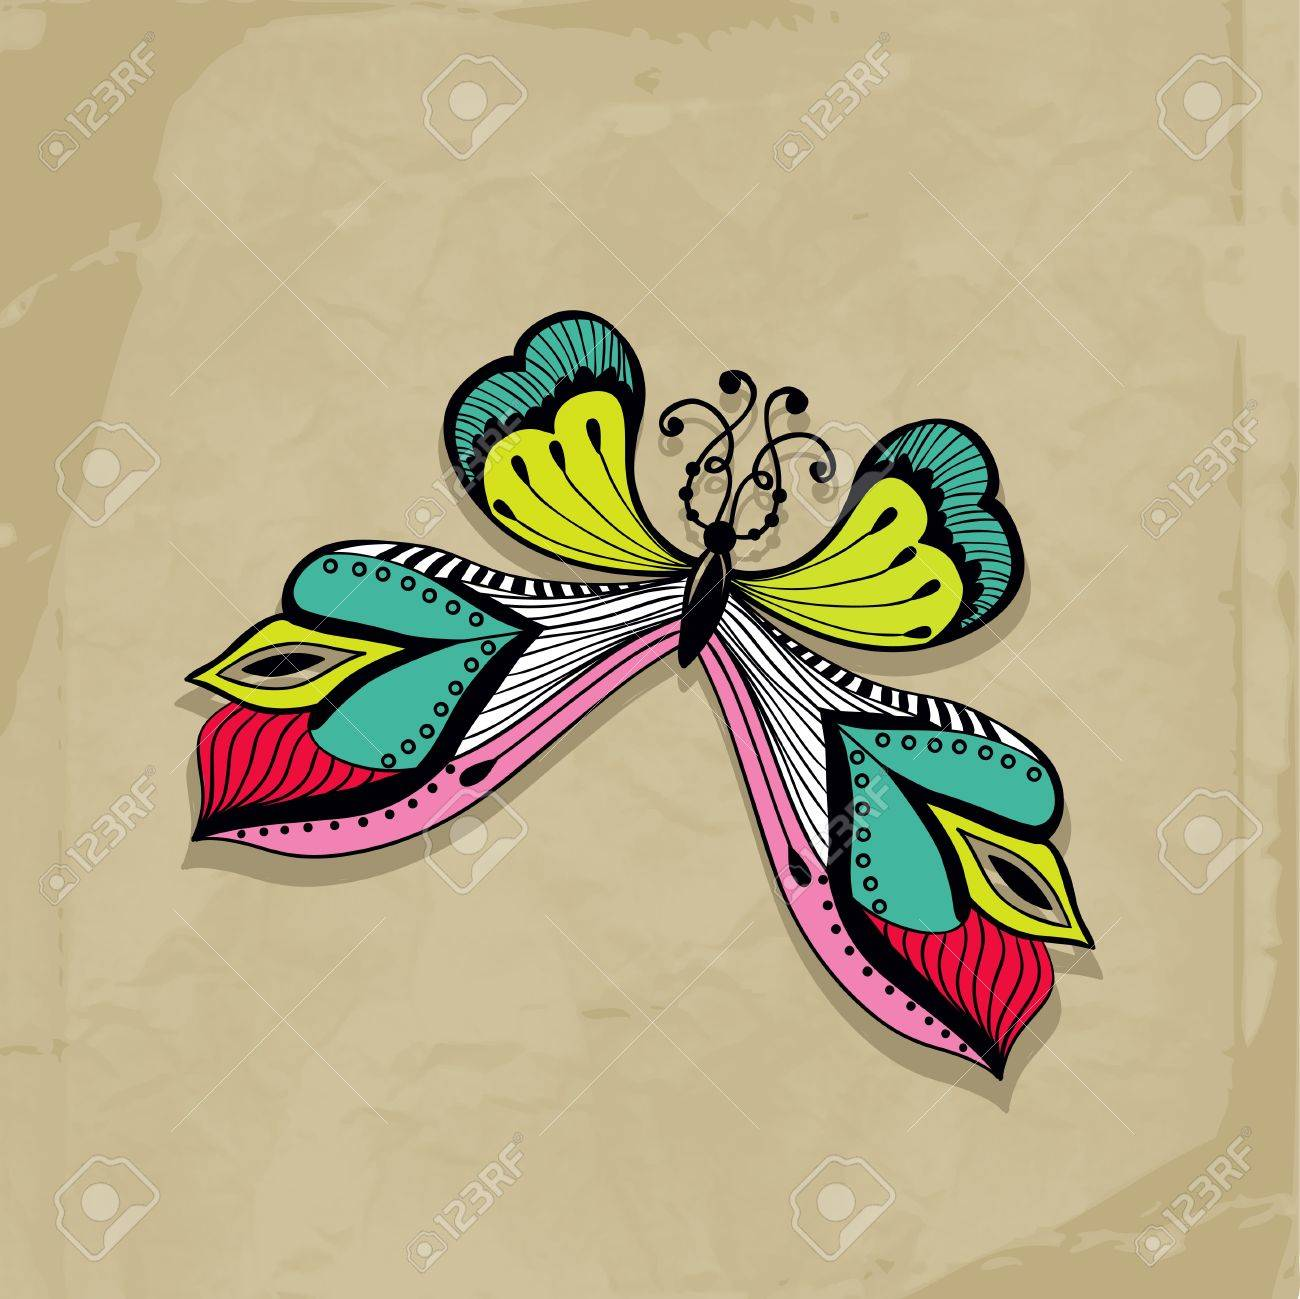 colorful abstract illustration of butterfly, Retro butterfly design Stock Vector - 21390133